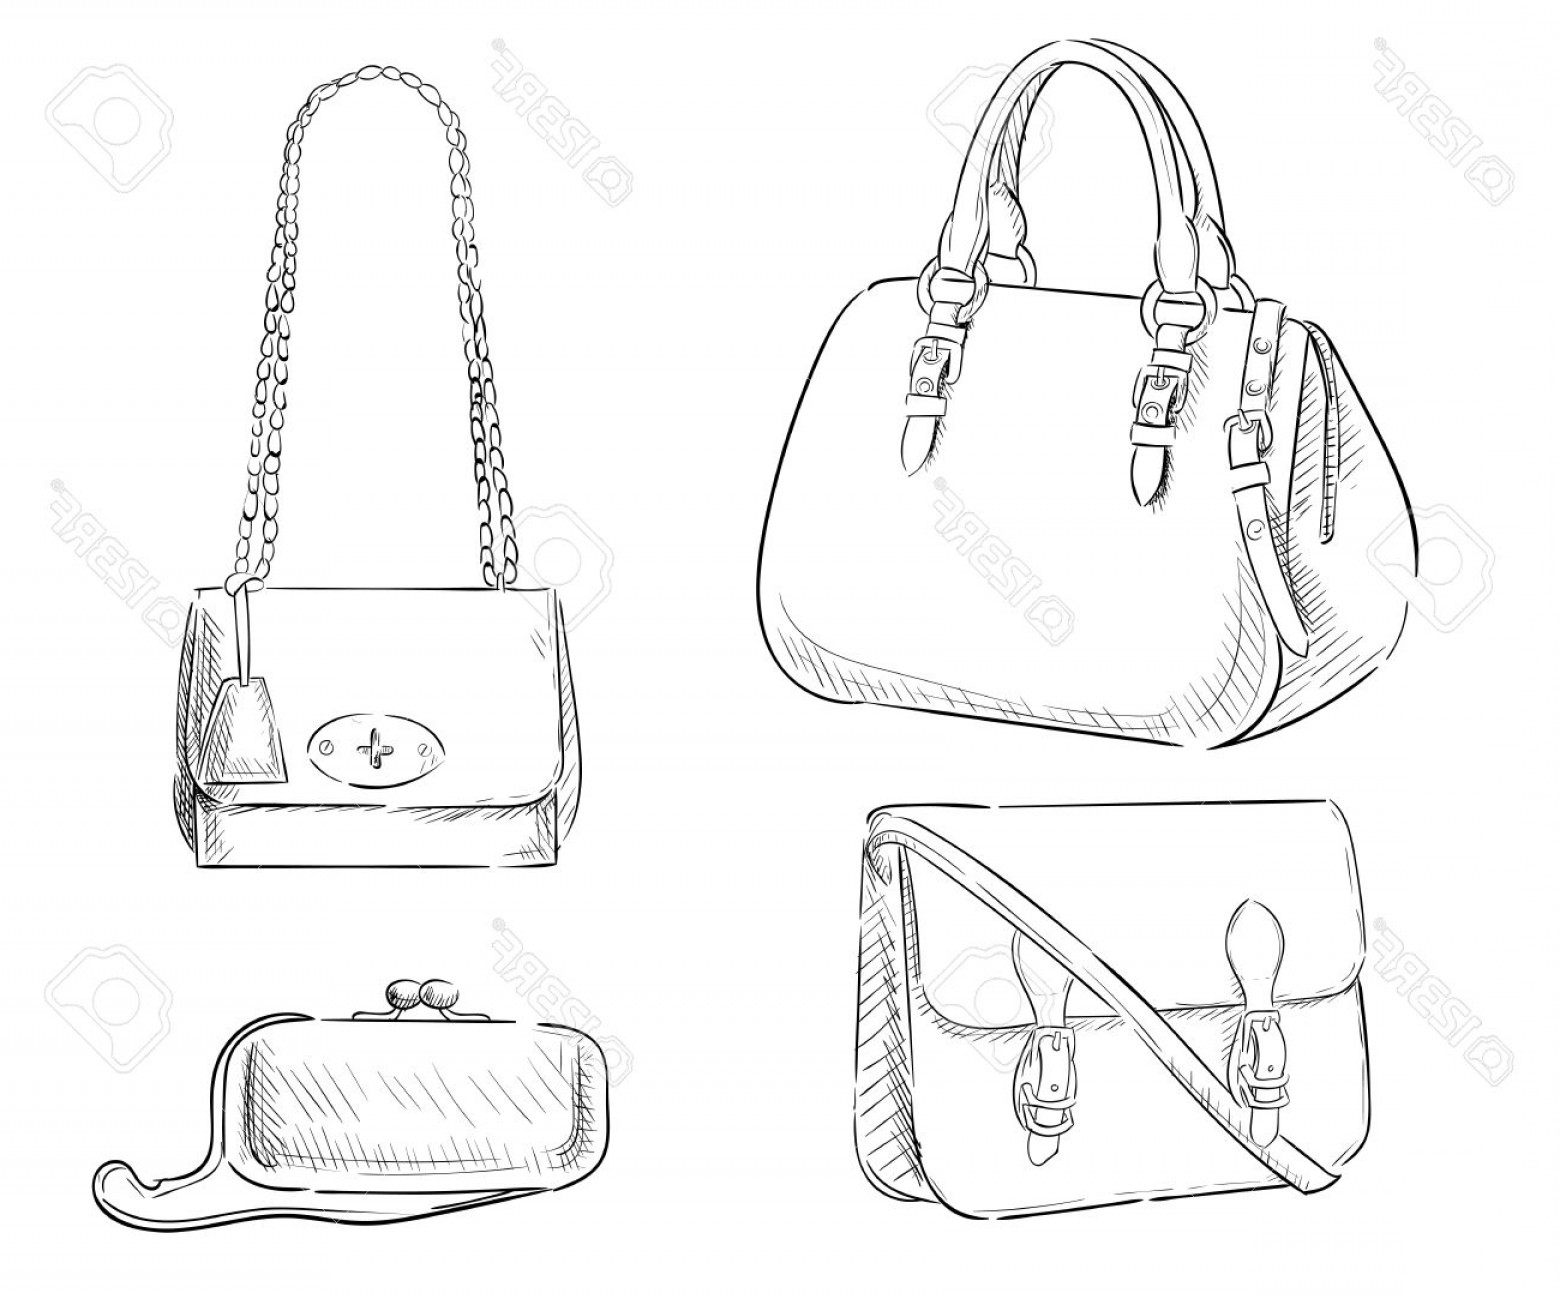 Purse Vector Art: Photostock Vector Sketches Of Bags Vector Fashion Illustration Women S Bags Hand Drawn Purses Set Of Women S Fashion A